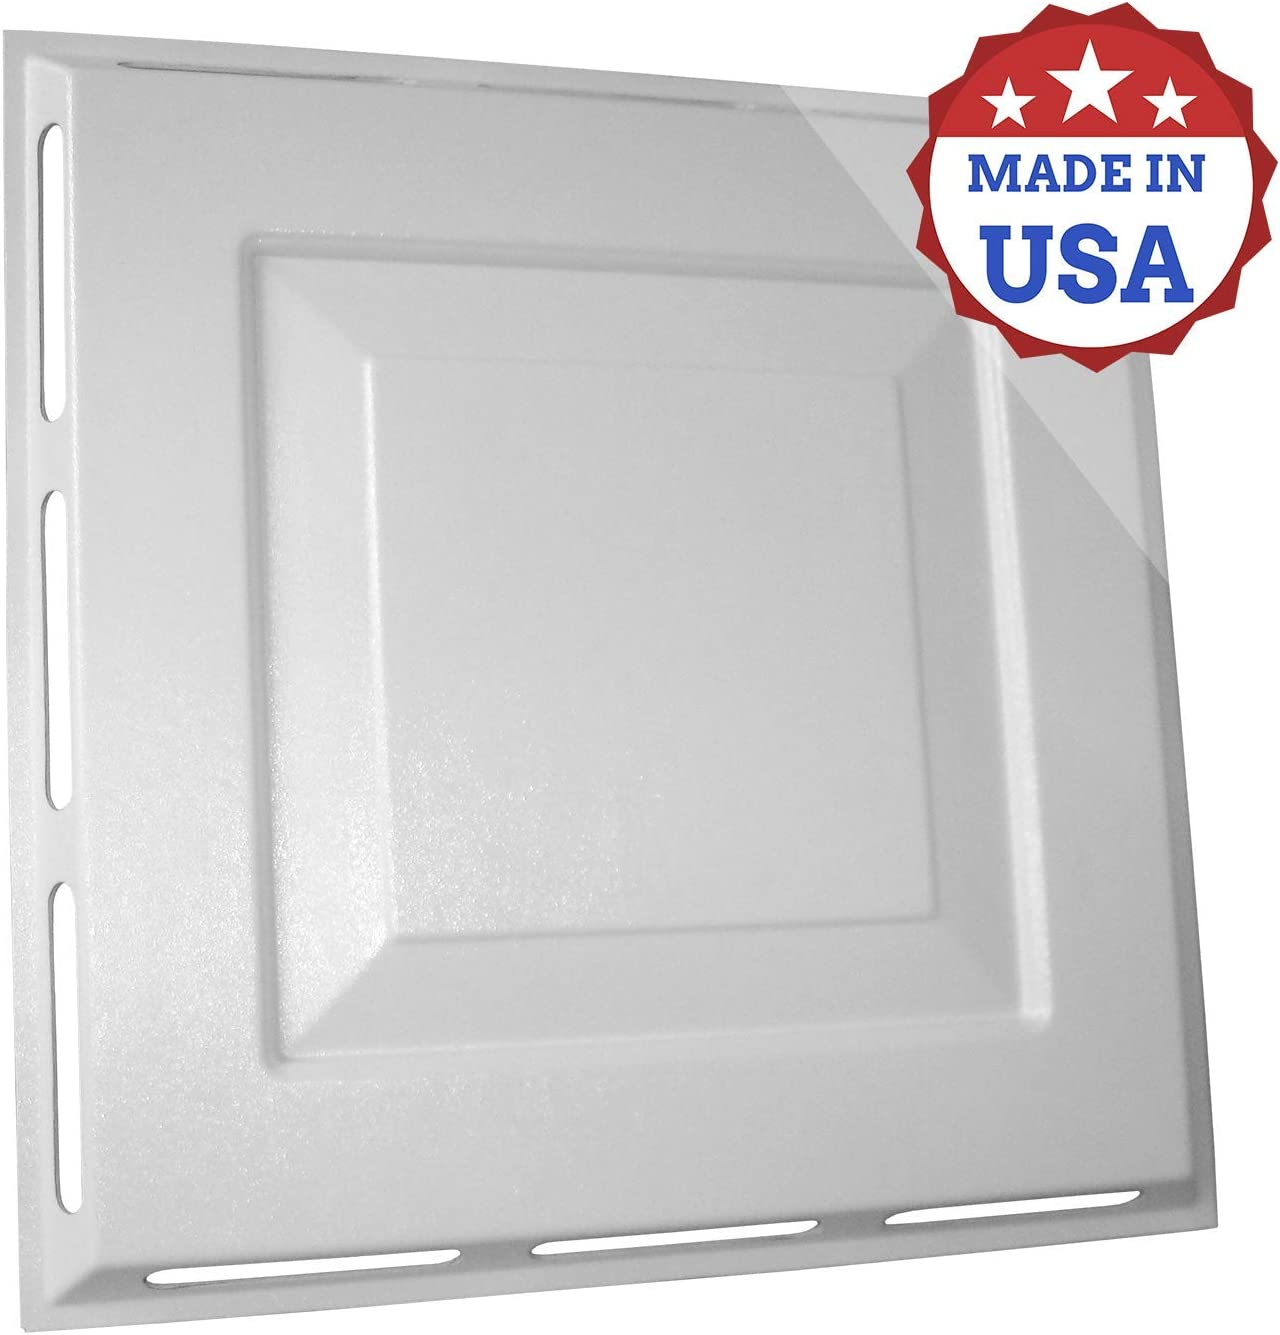 4-Way Air Vent Deflector, Easy to Install, No Tools Required, Durable, Premium, and Smooth Finish, Made in USA